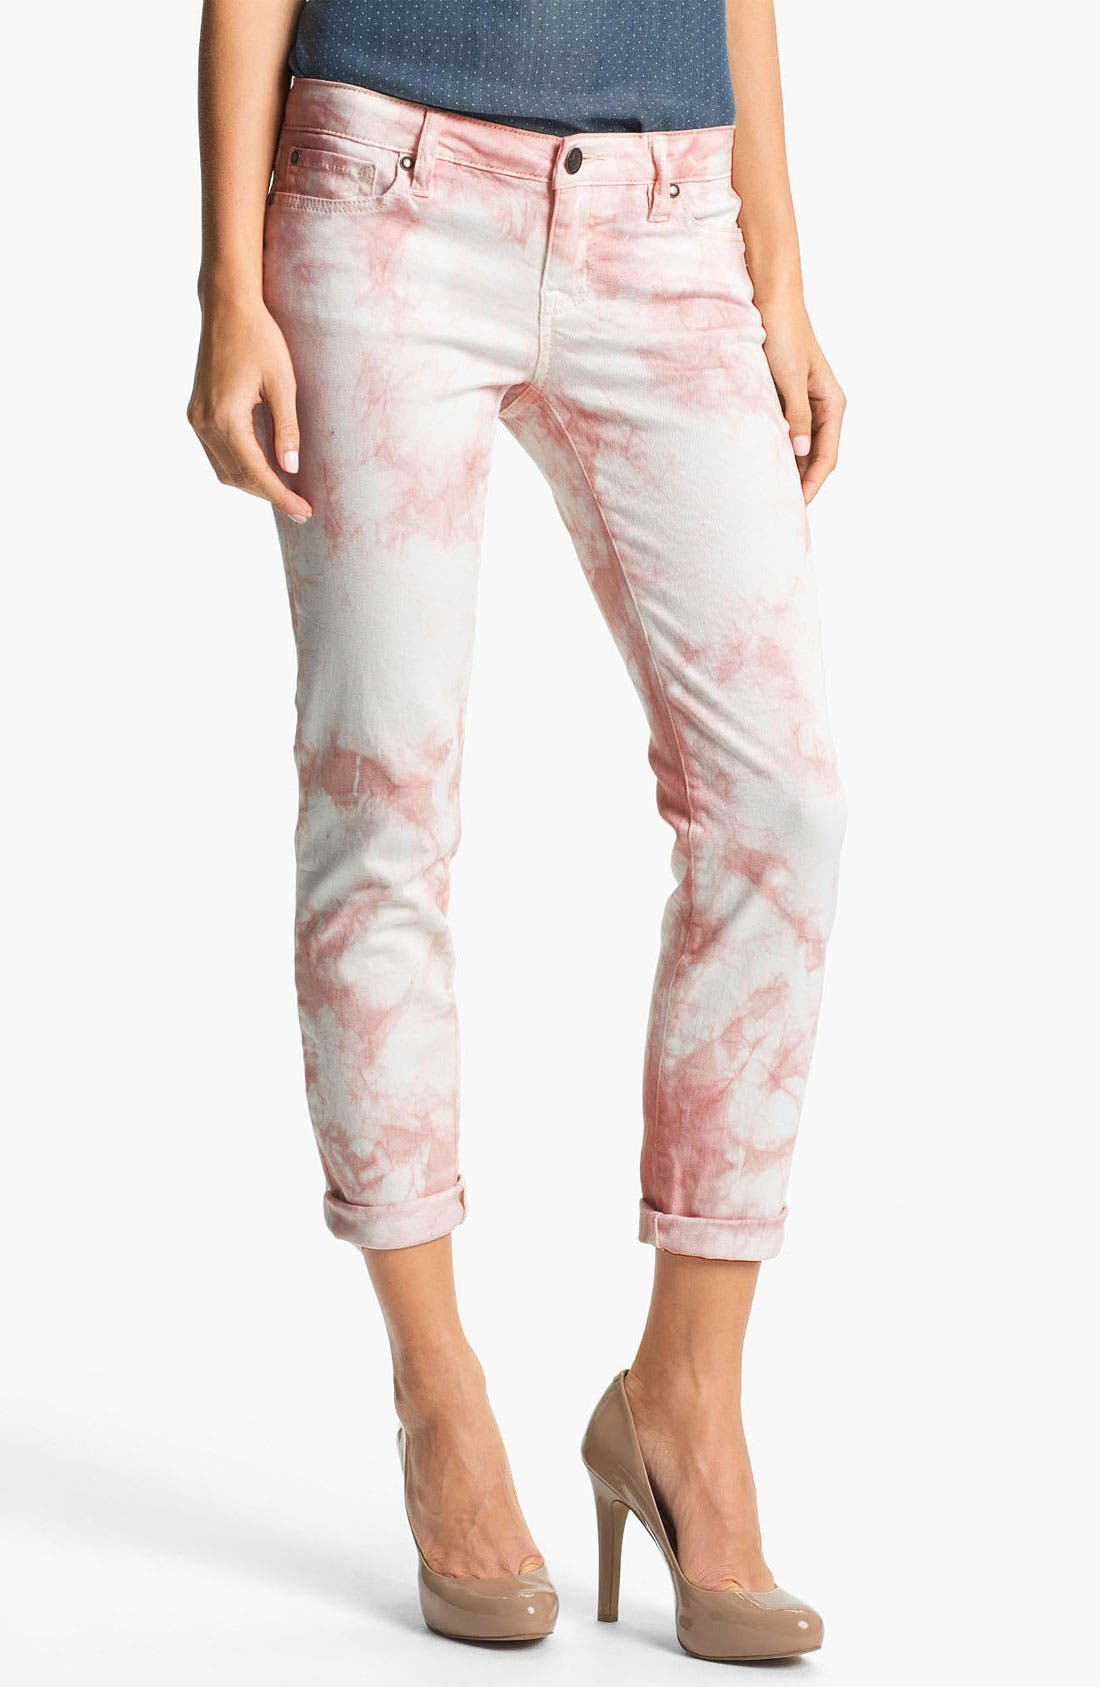 Main Image - Jessica Simpson 'Forever' Cuffed Skinny Jeans (Peach Whip) (Online Exclusive)